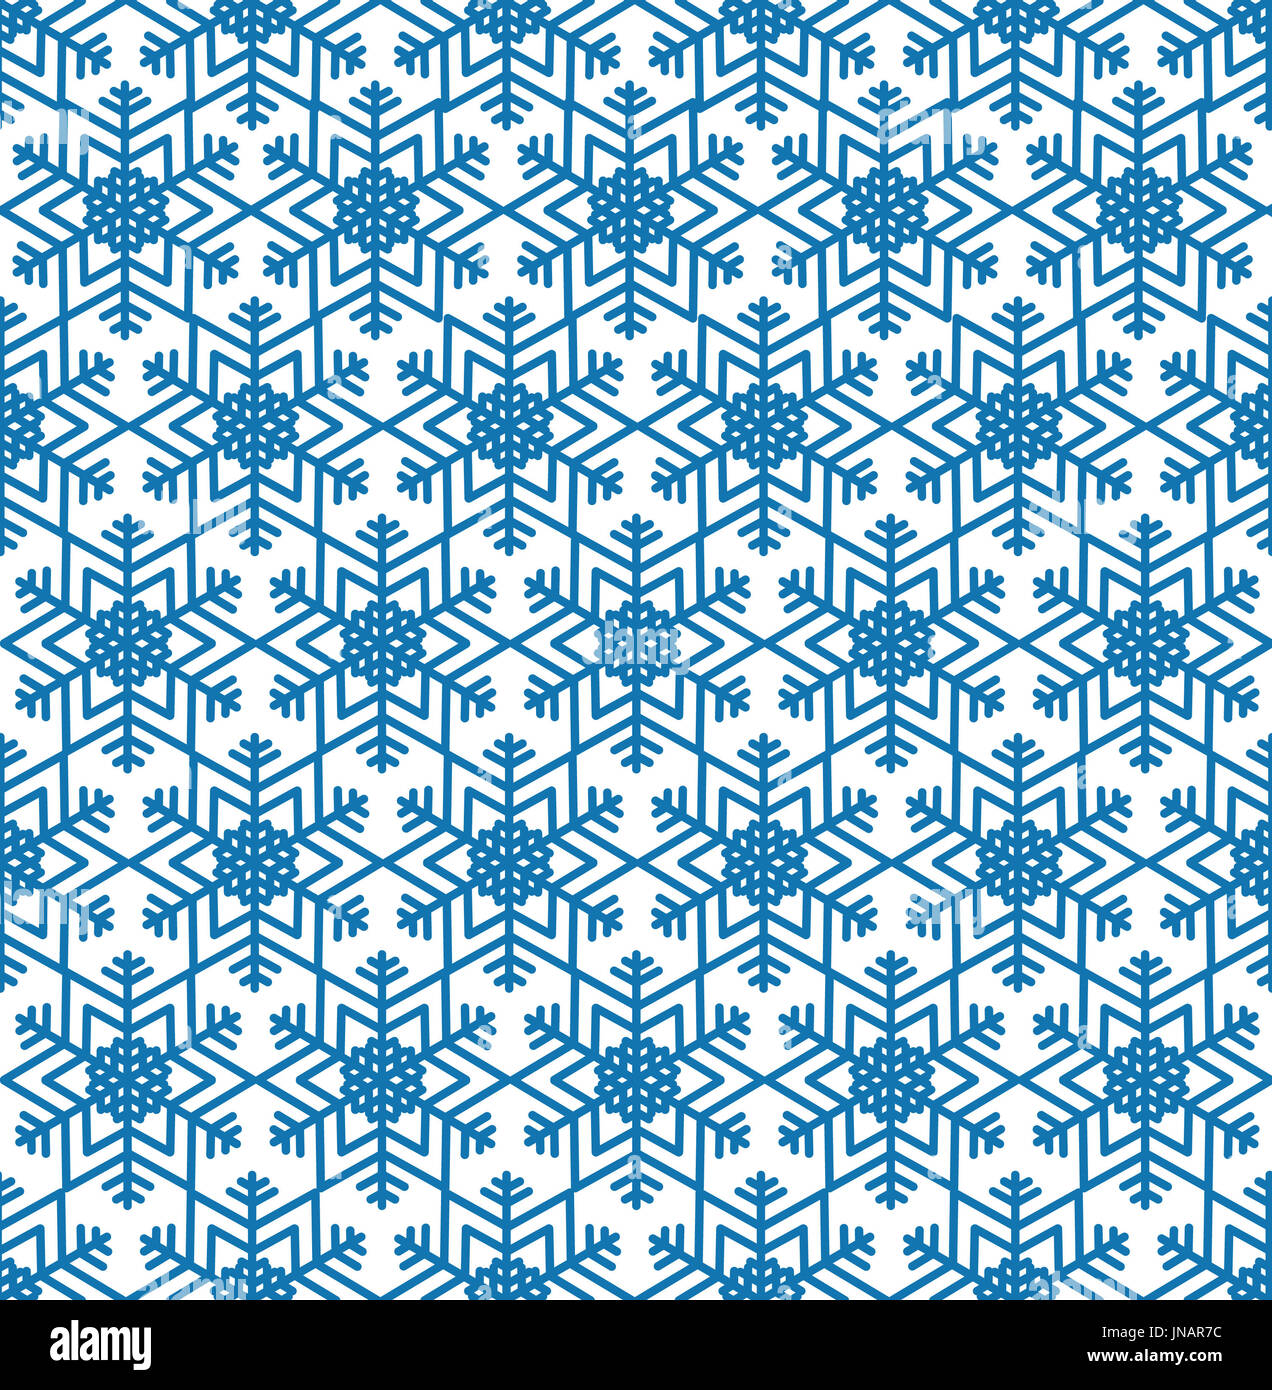 snow seamless pattern abstract winter ornamental textured stock